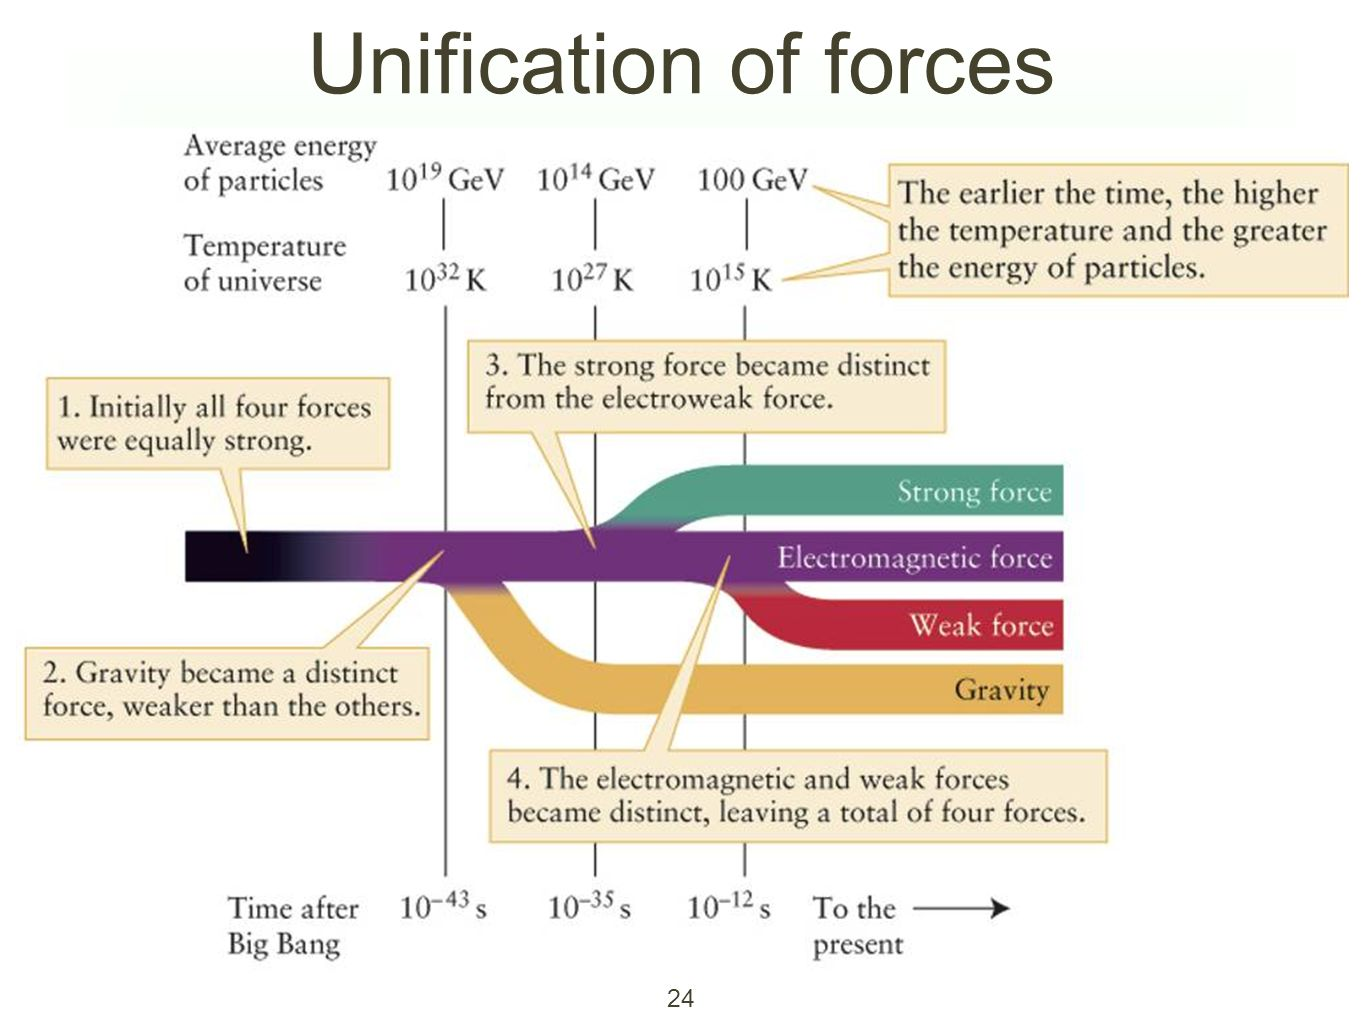 Unification of forces